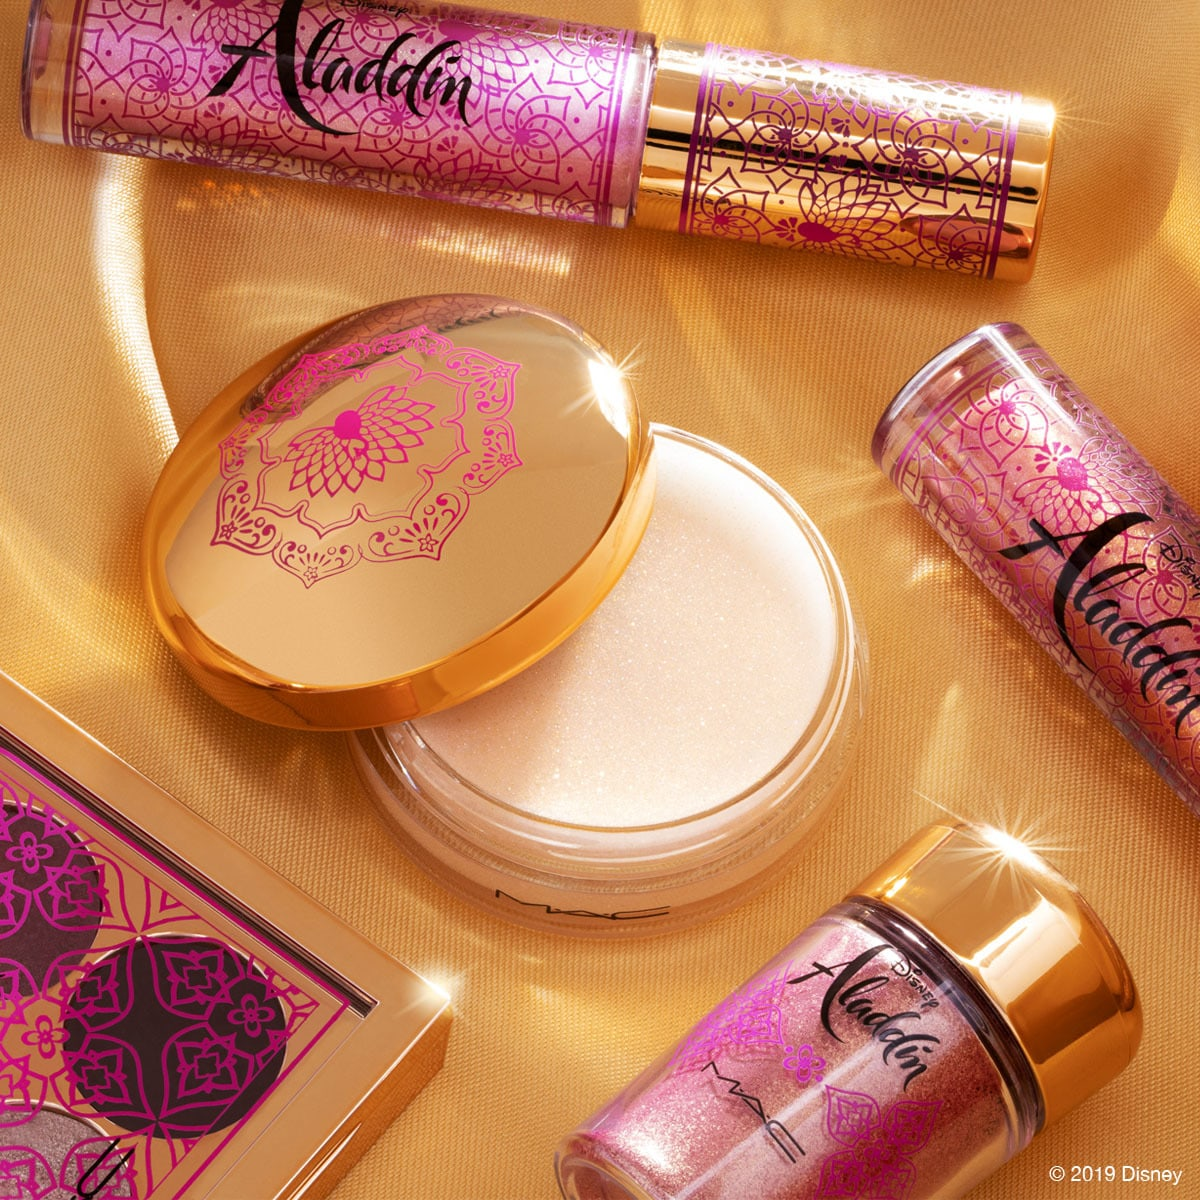 Makeup products from the Aladdin Collection by MAC